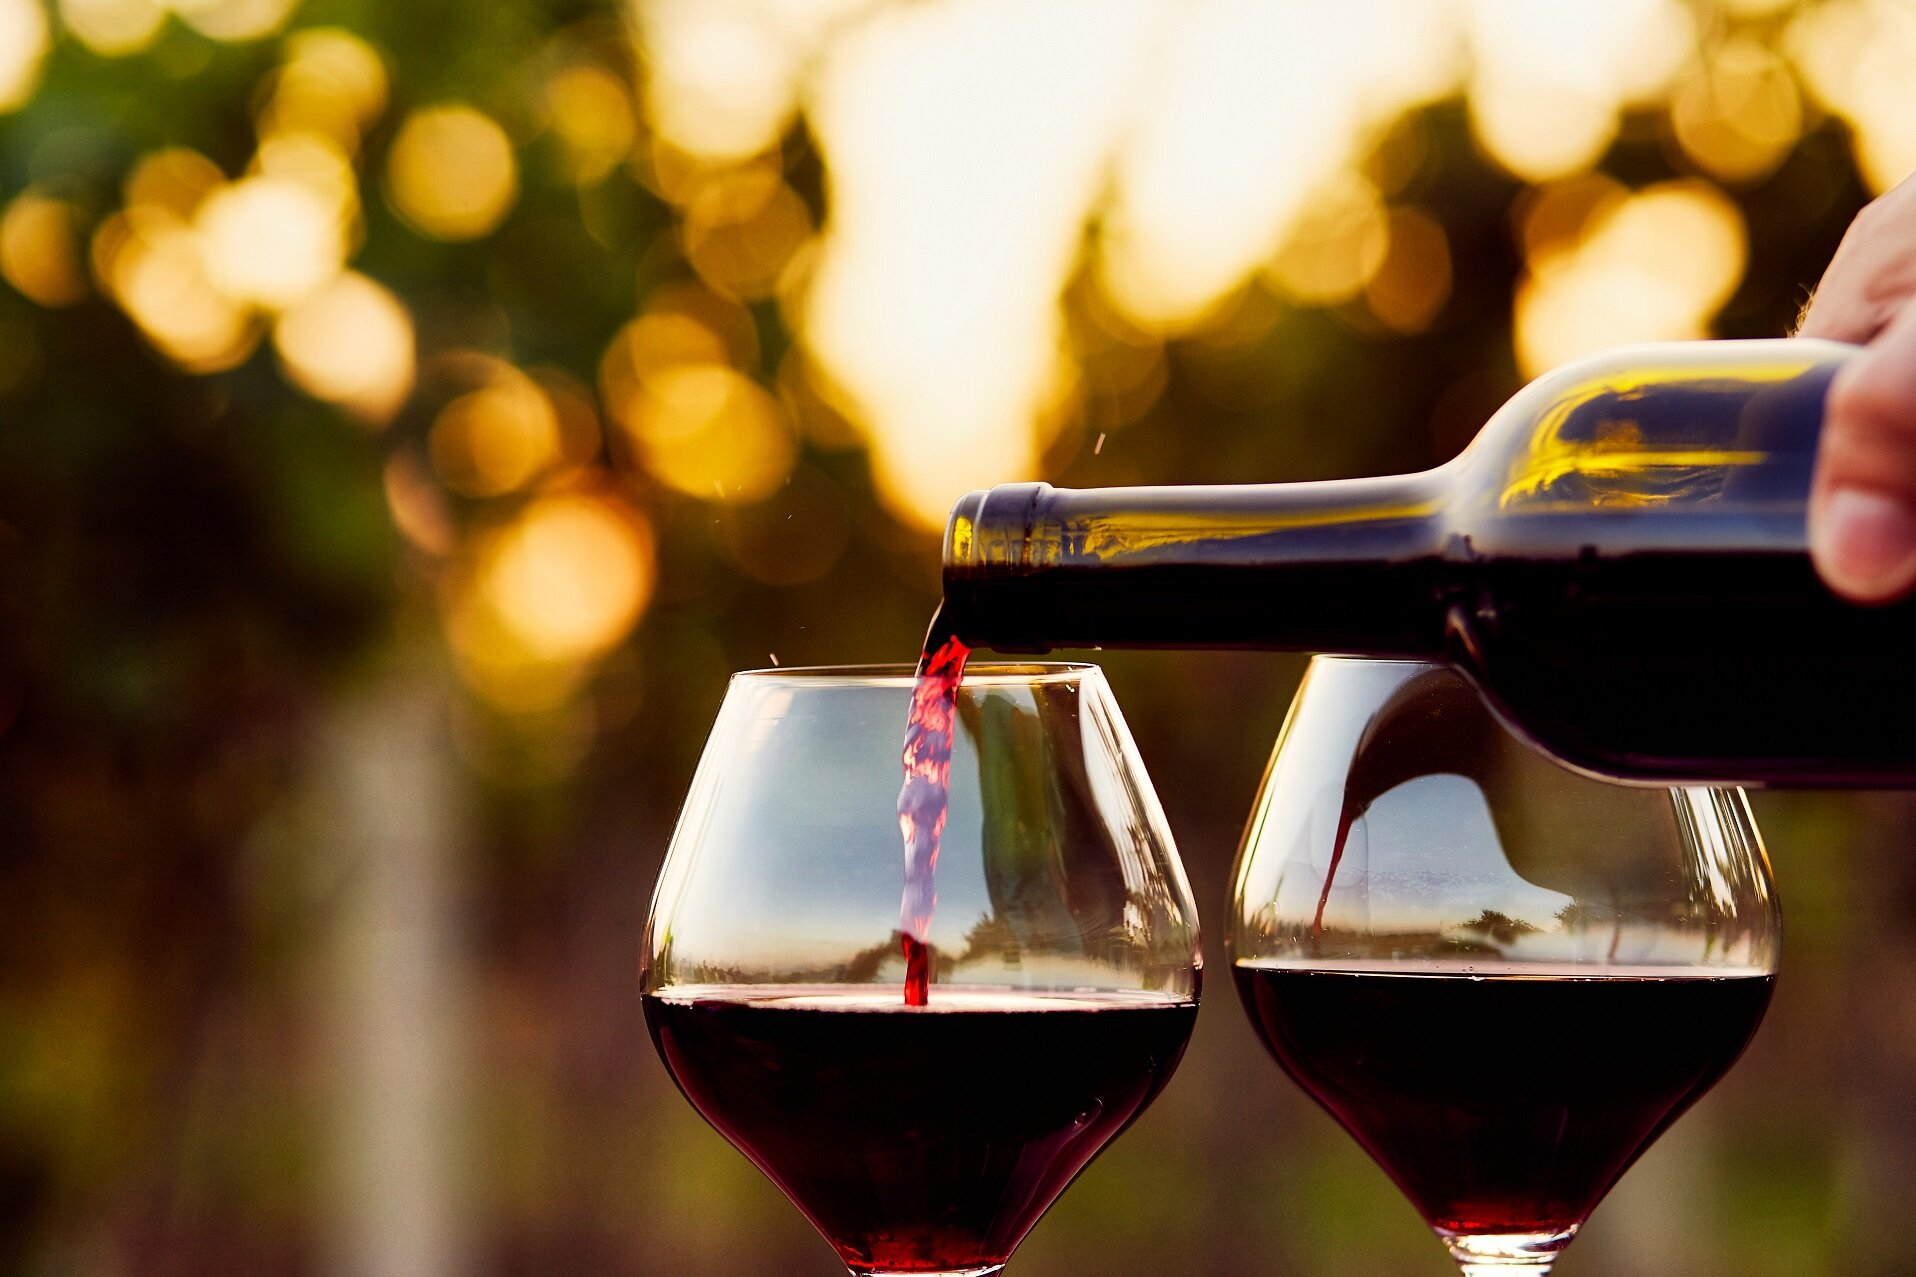 Final goal achieved - a perfectly-aged glass of wine, ready to imbibe - Image Credit: RostislavSedlacek via Shutterstock - HDR tune by Universal-Sci